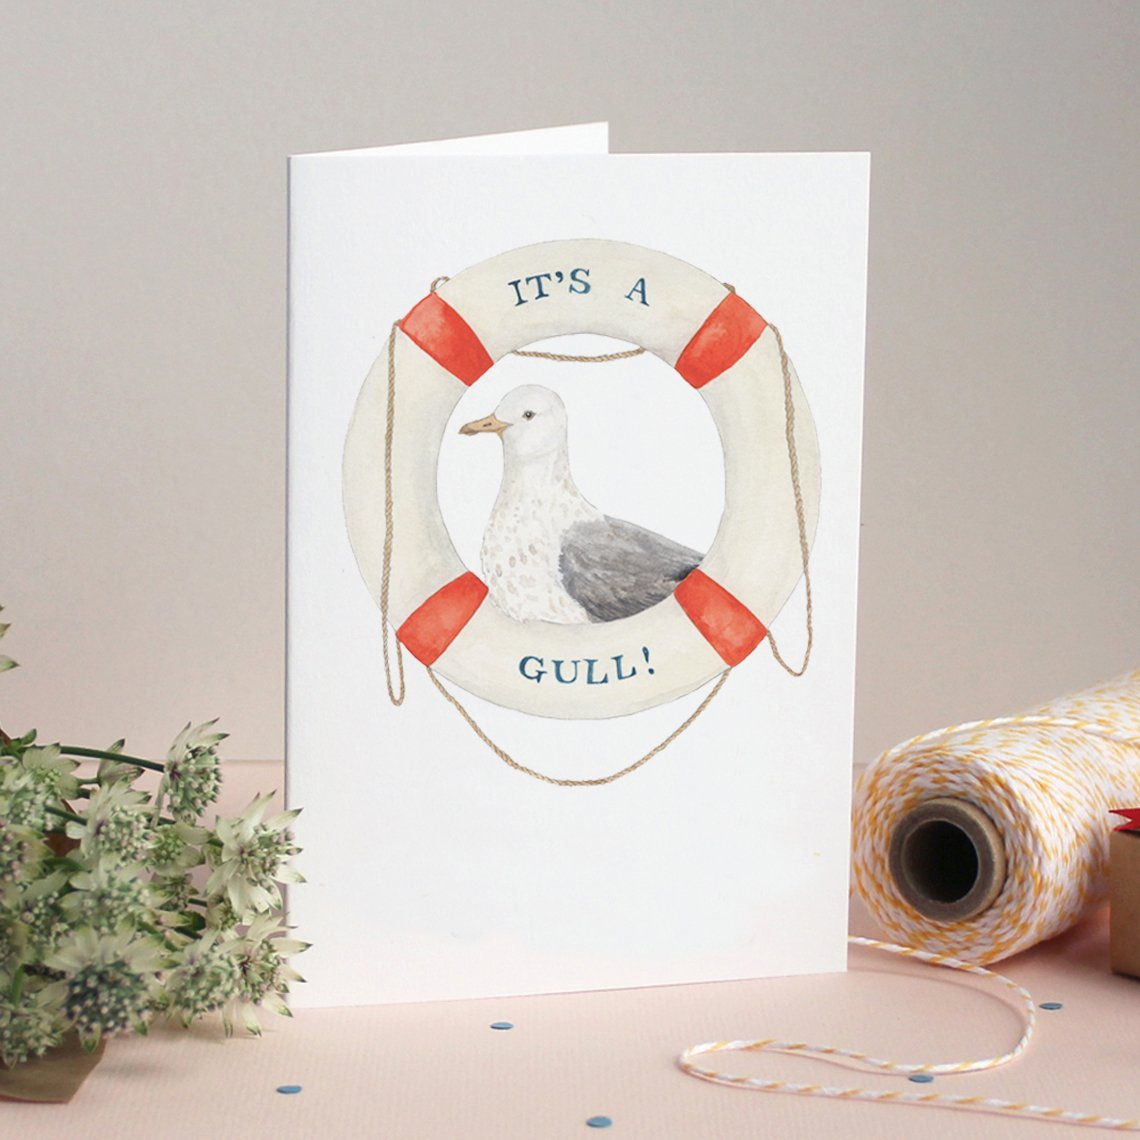 Mister Peebles Greeting Card 'It's A Gull!'